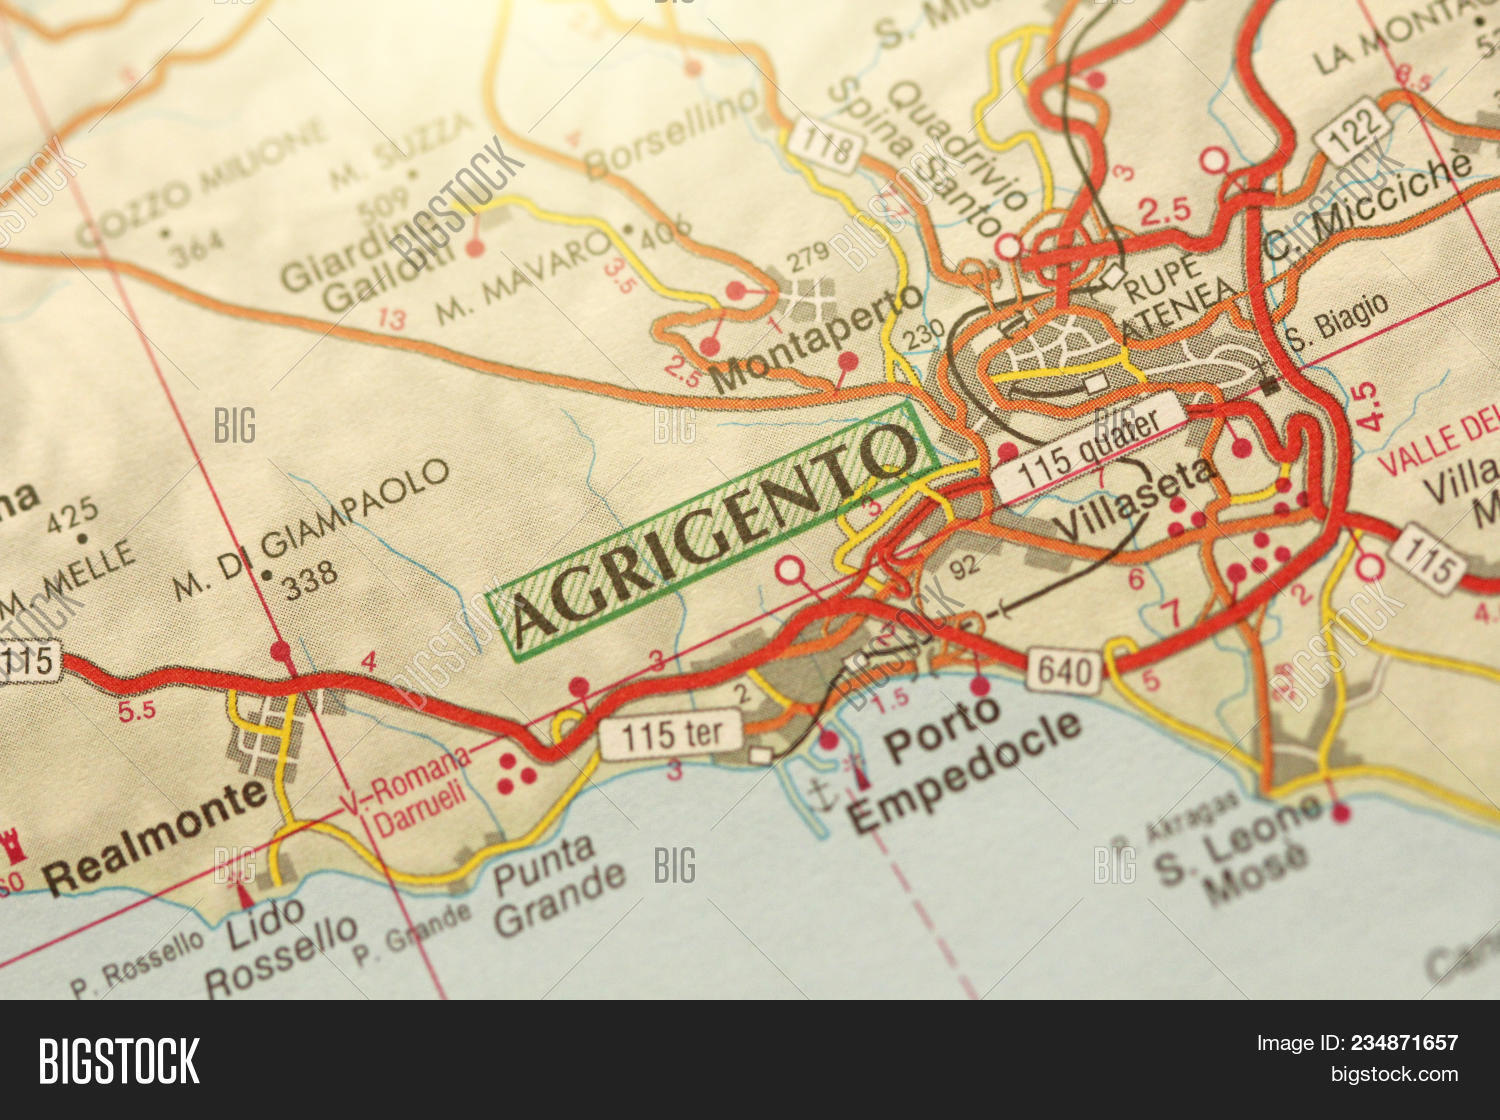 Agrigento Italy Map.Agrigento Island Image Photo Free Trial Bigstock